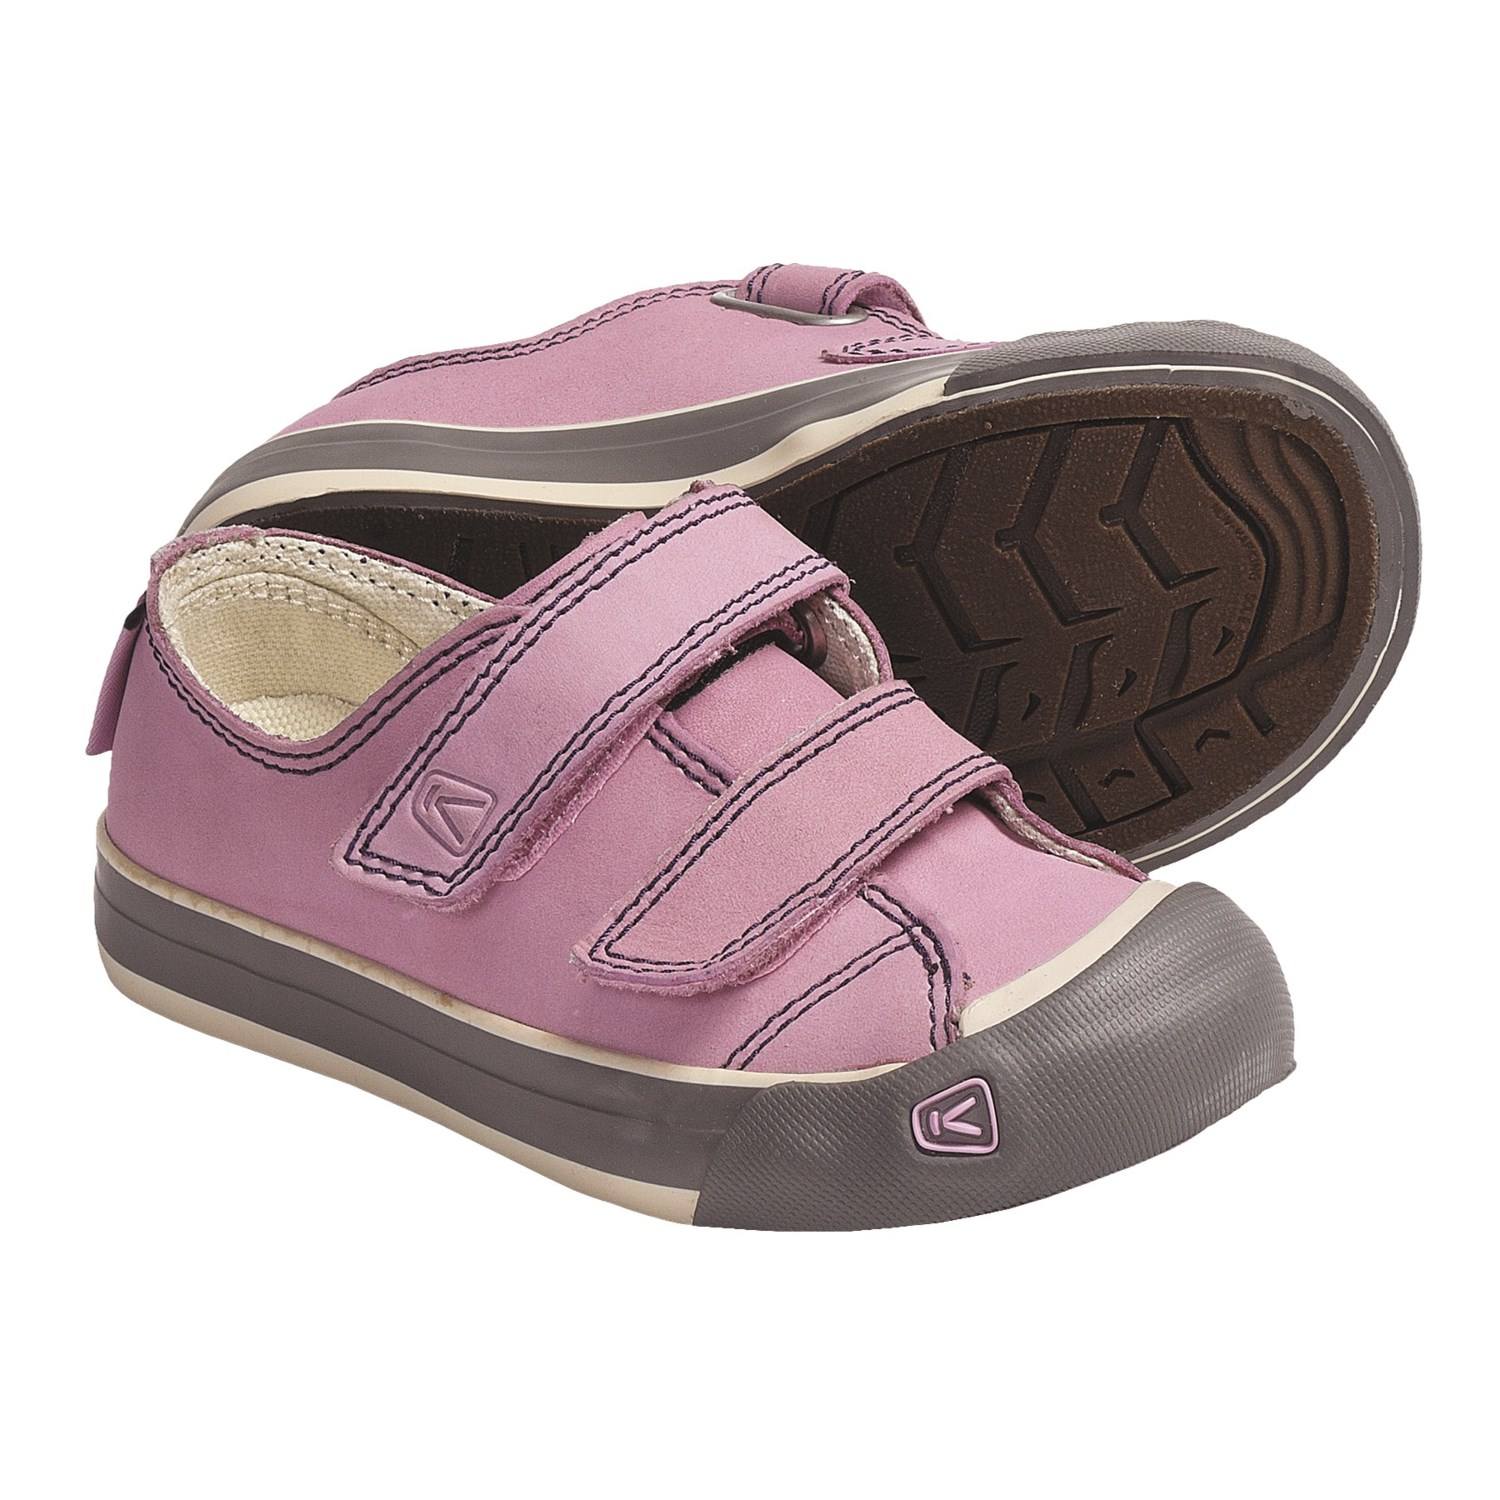 Shop eBay for great deals on Leather Slippers Unisex Kids' Shoes. You'll find new or used products in Leather Slippers Unisex Kids' Shoes on .